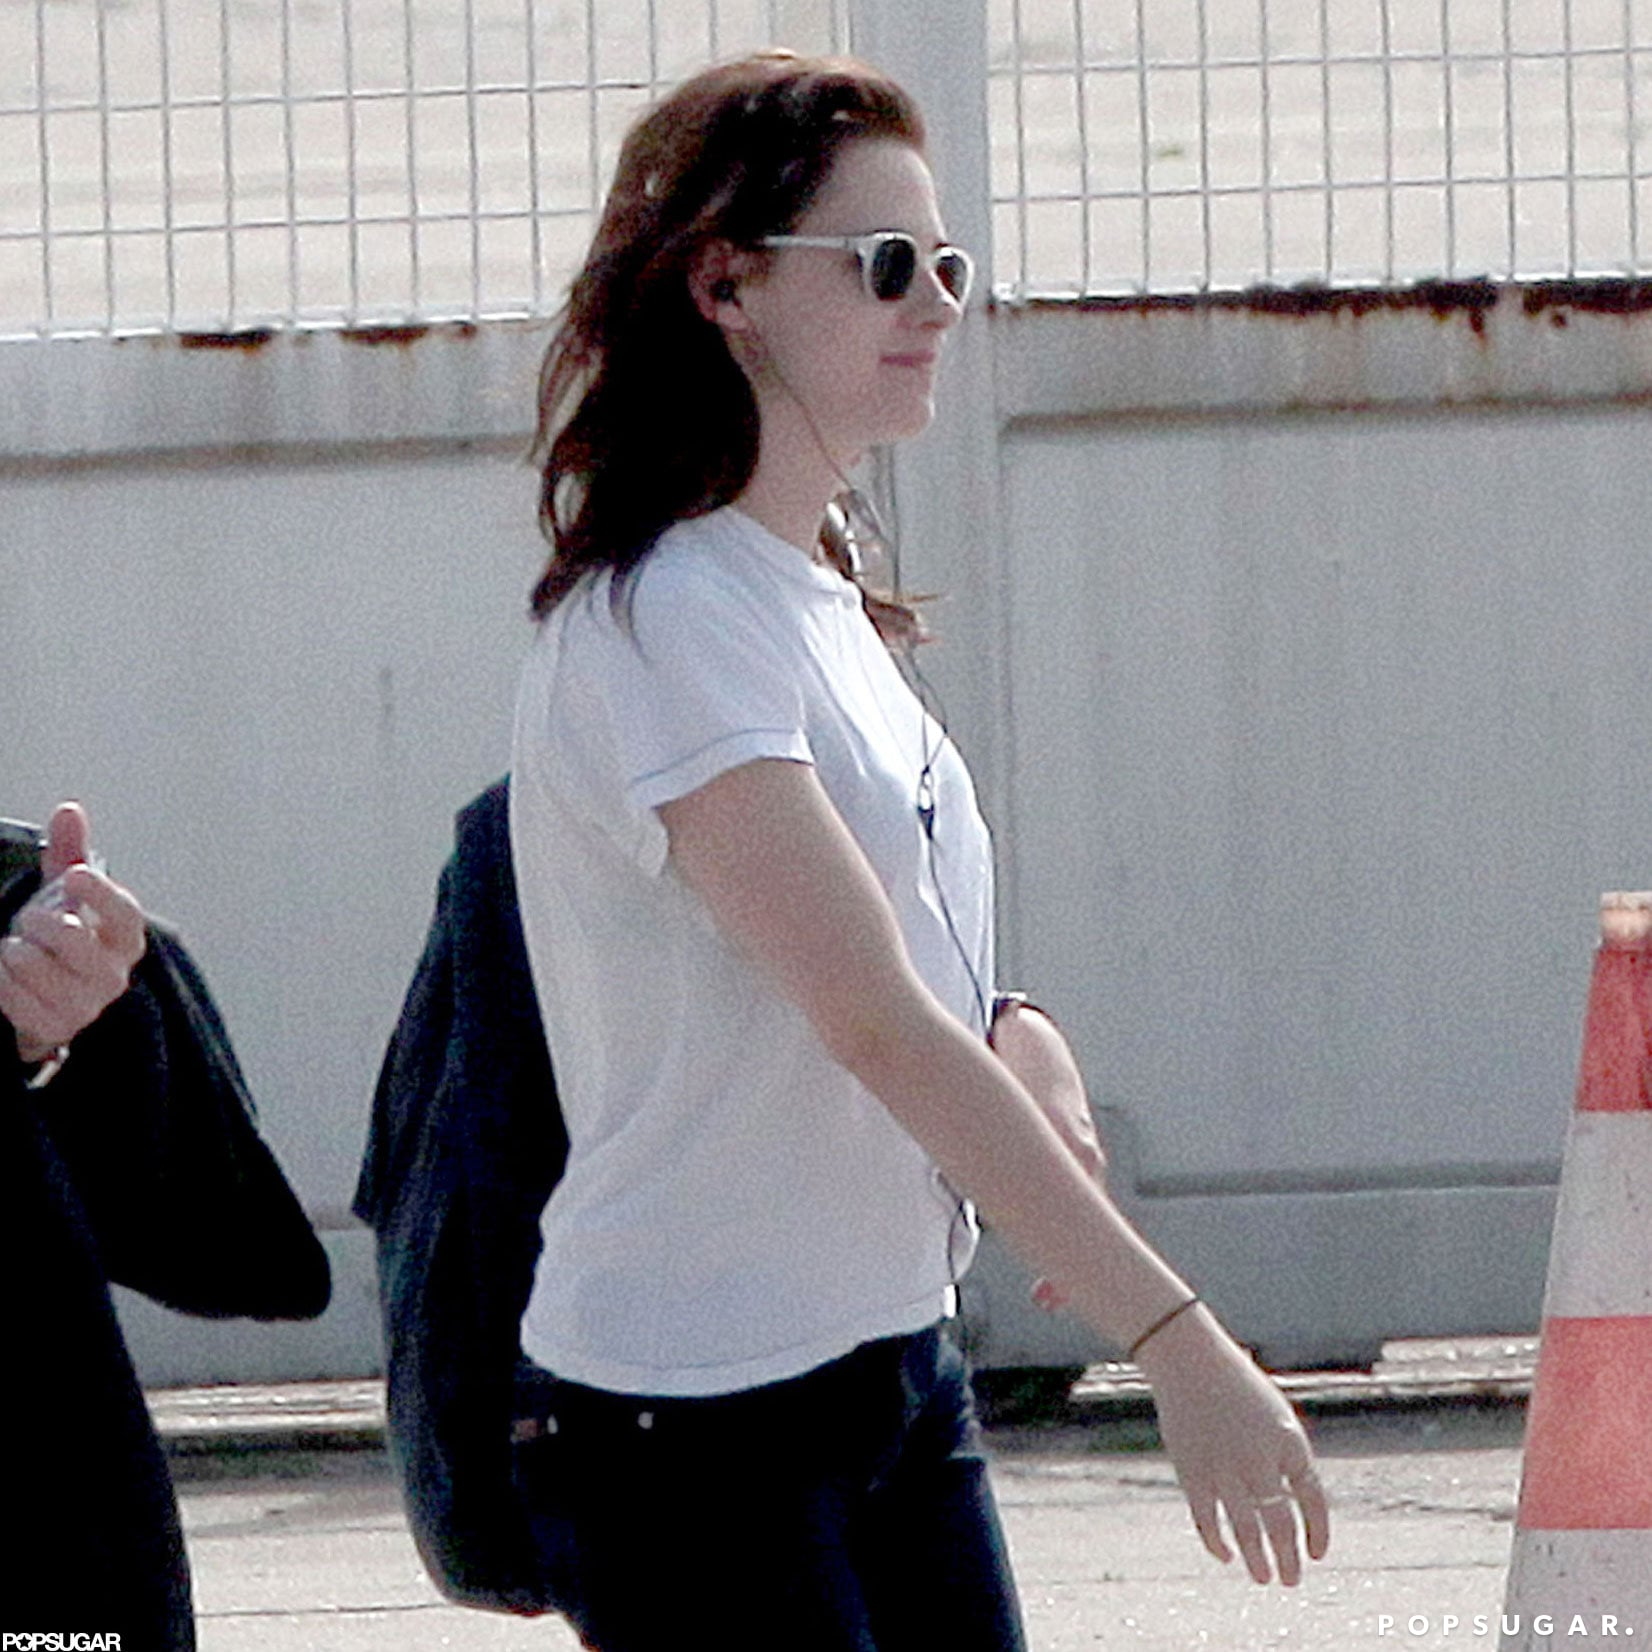 Kristen Stewart wore a white shirt and sunglasses.